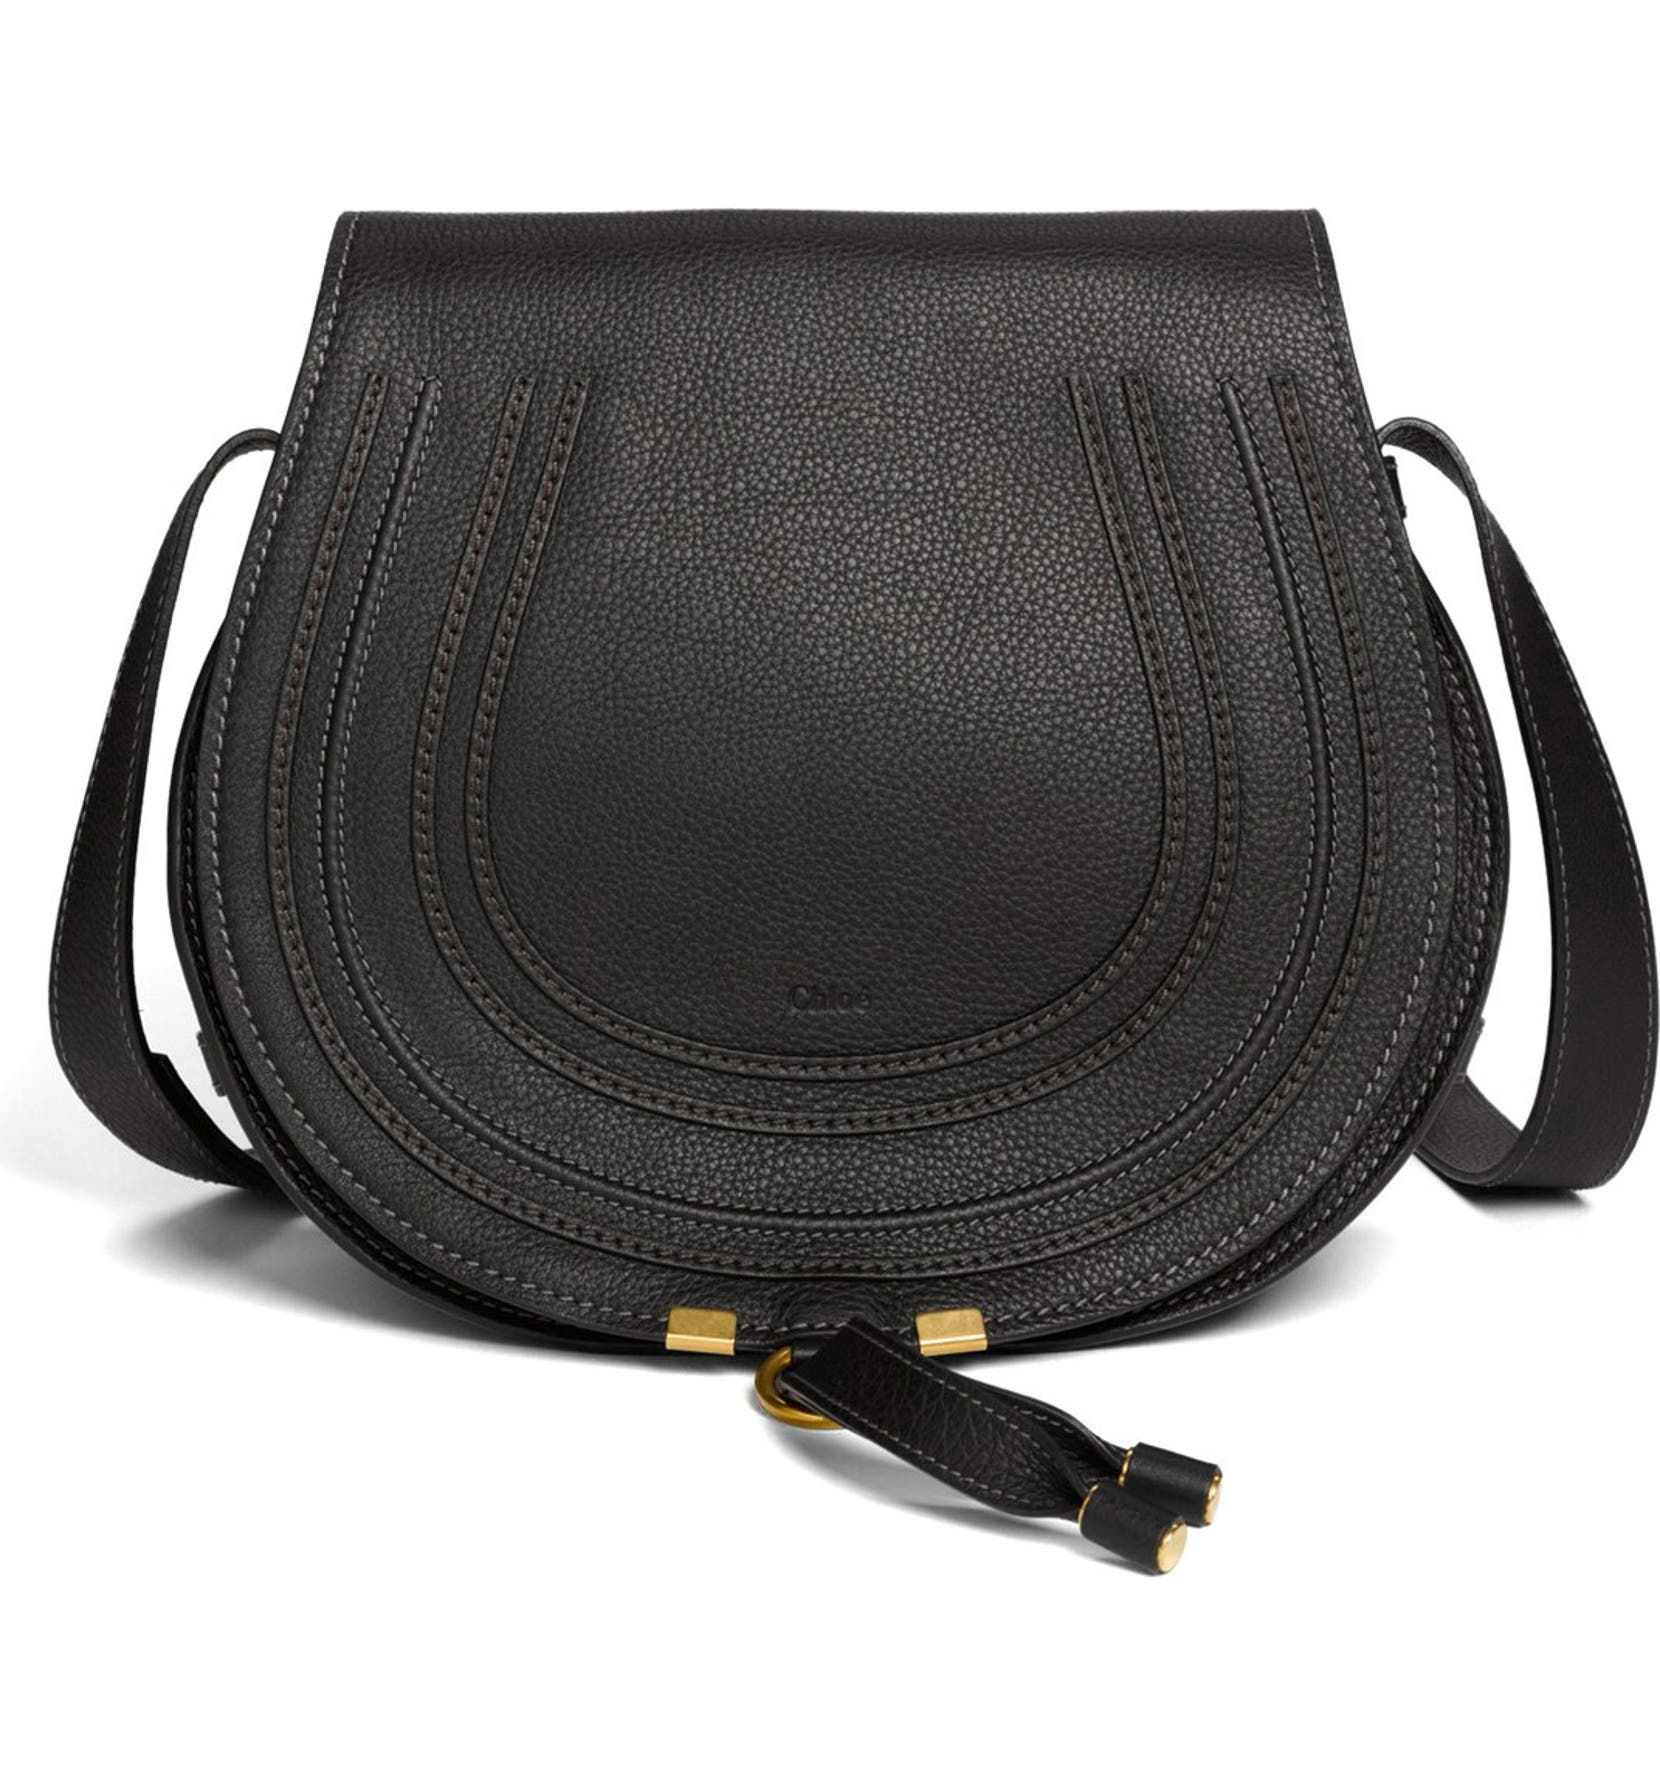 b25ab2d2030 'Marcie - Medium' Leather Crossbody Bag